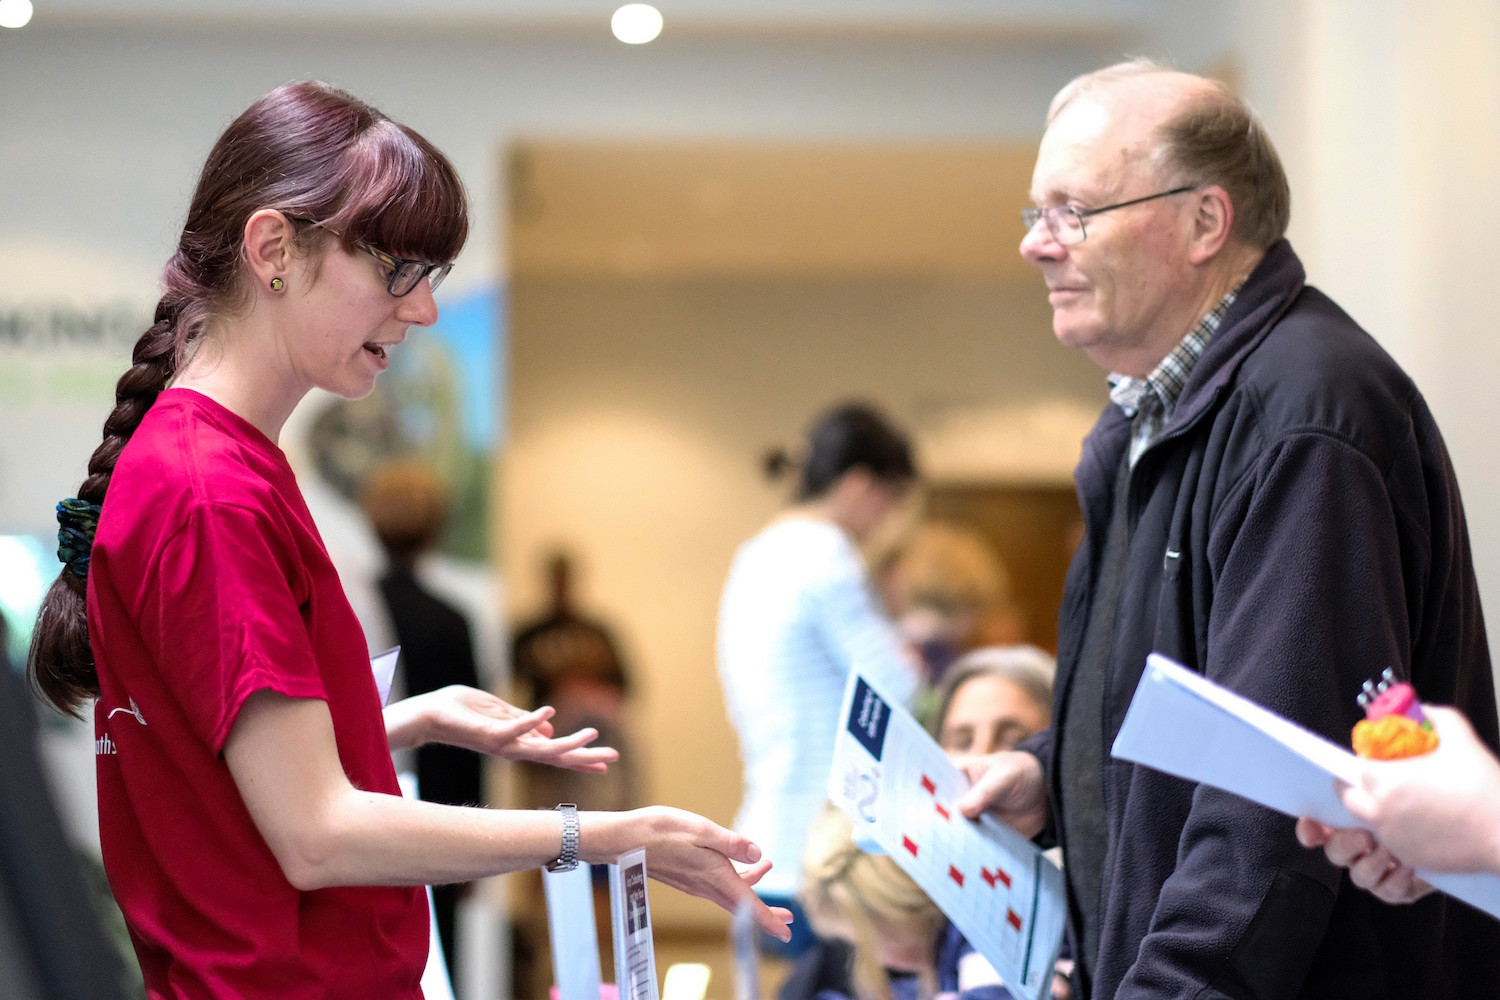 Volunteer explaining mathematical colouring handouts to a visitor at the Dunedin Maths Craft Day 2018